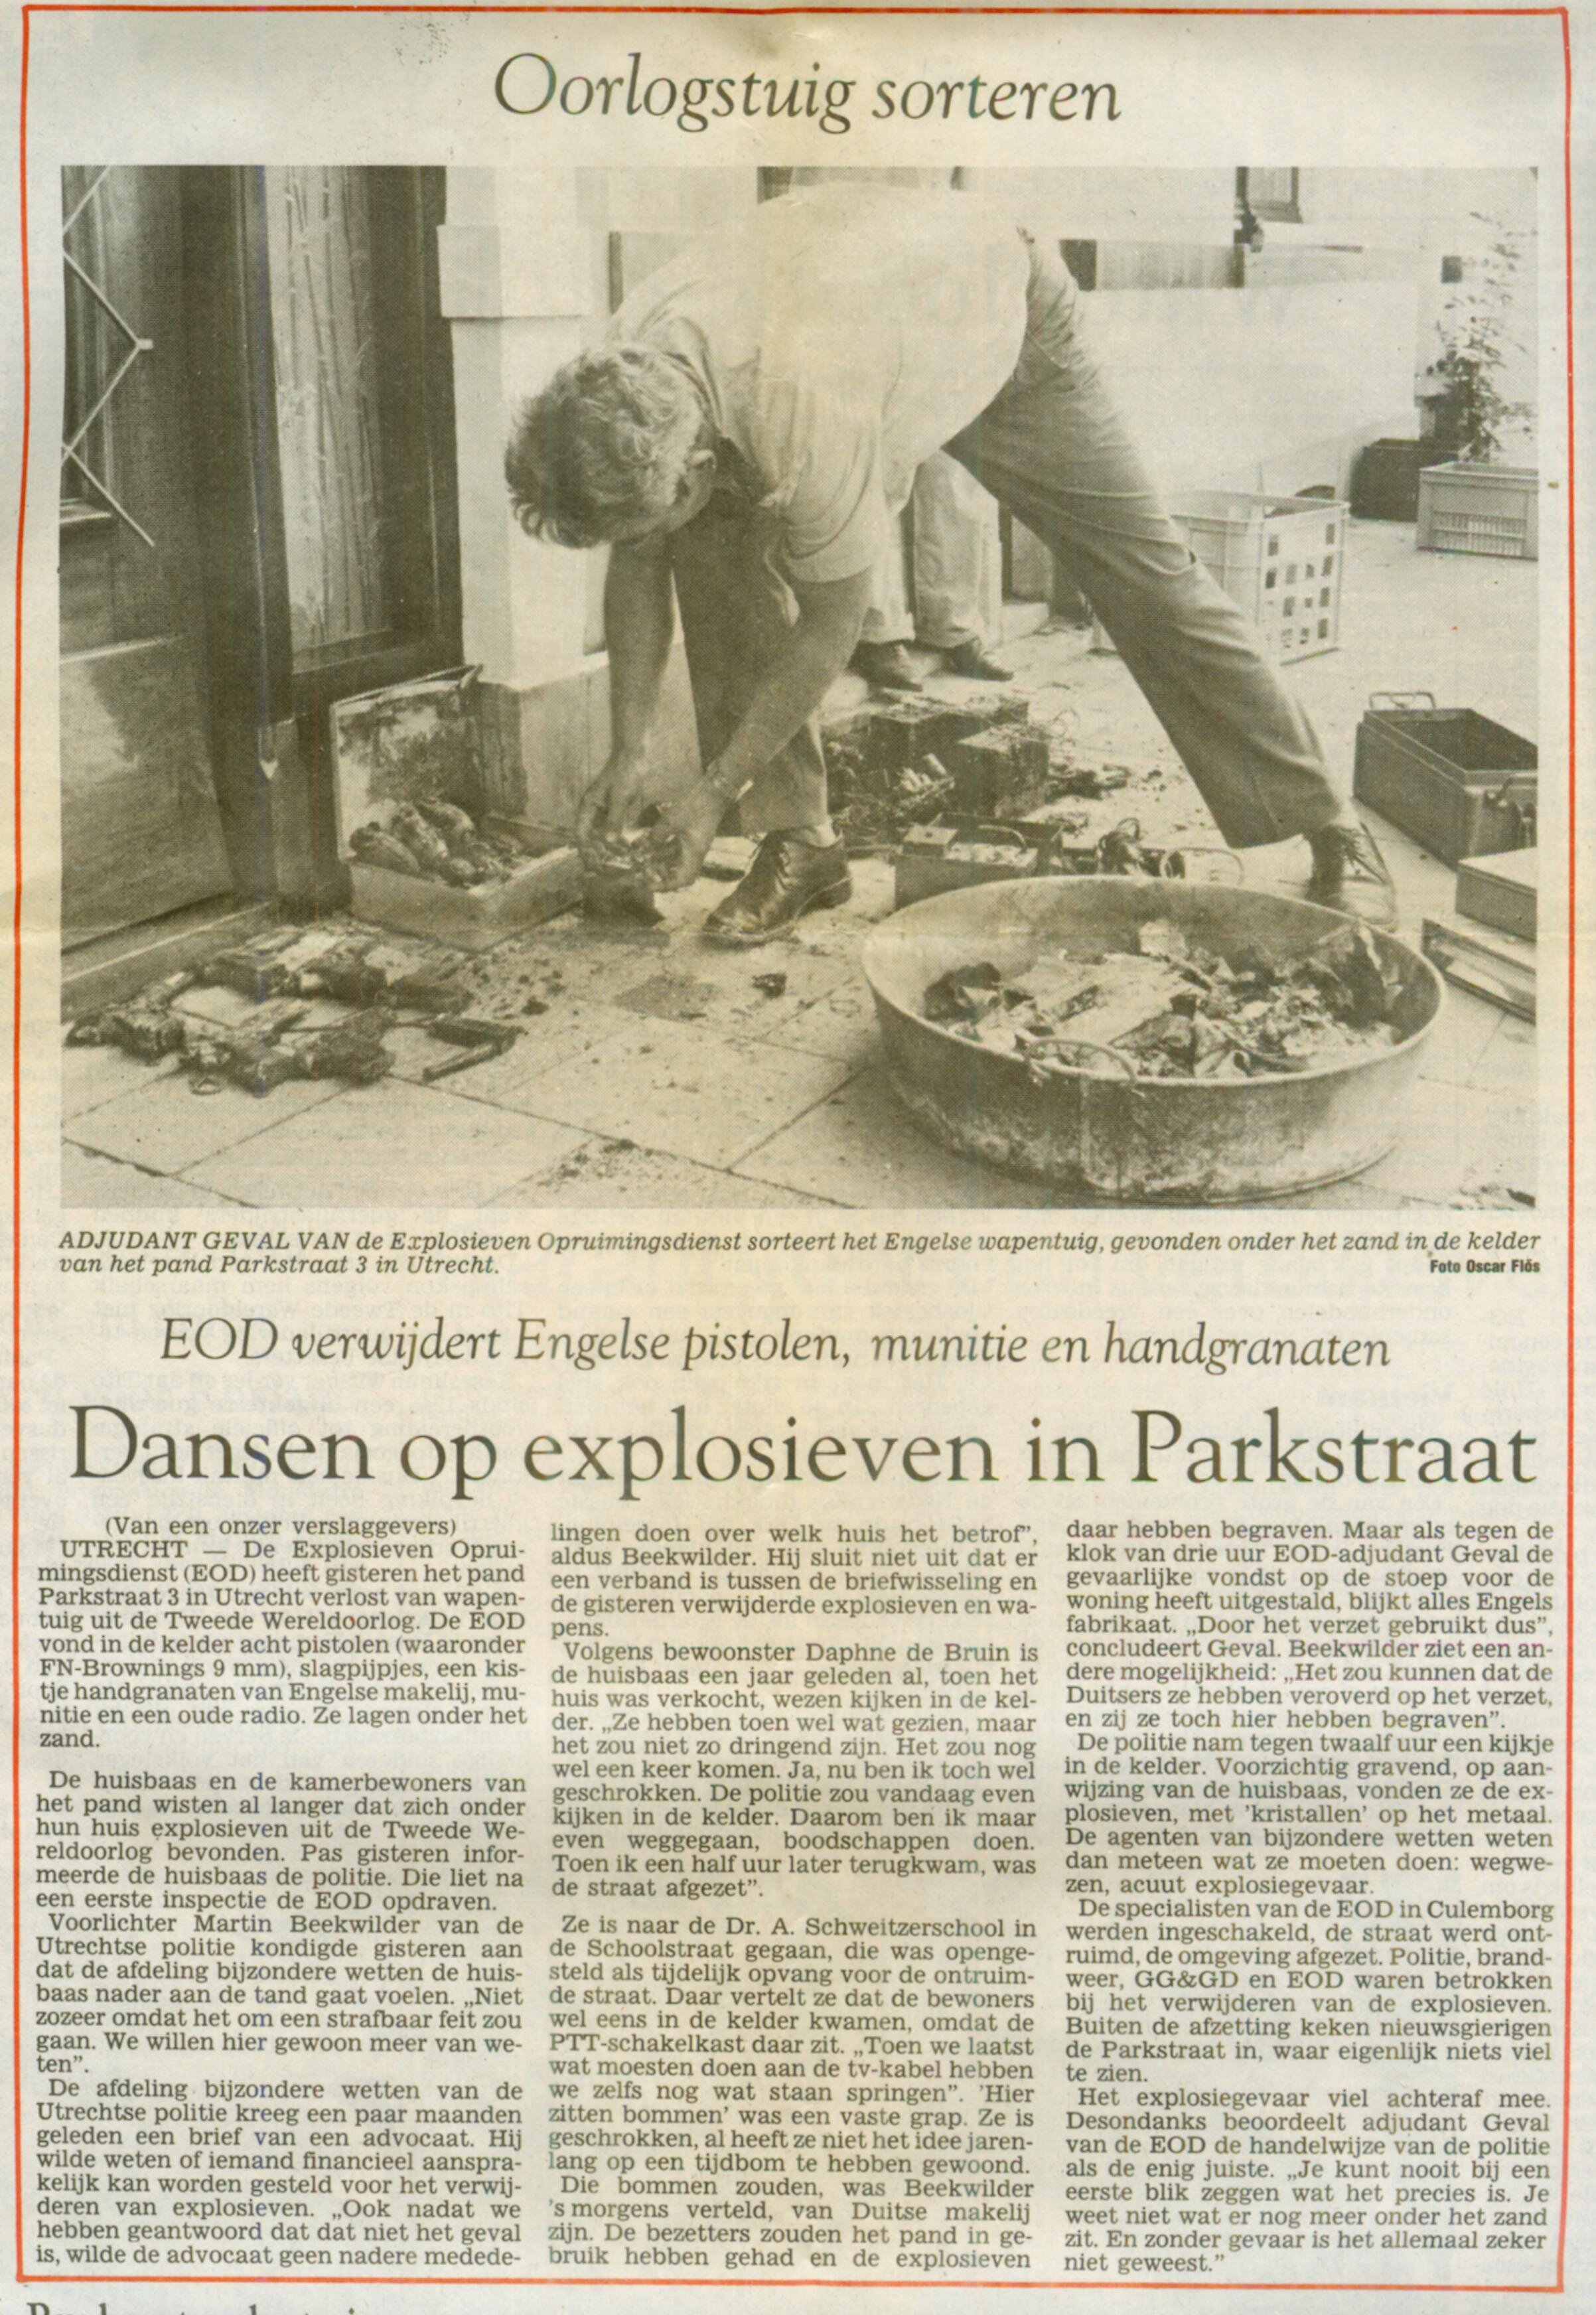 A newspaper clipping showing the weapons and radios pulled from the basement of #3 Parkstraat in Utrecht.